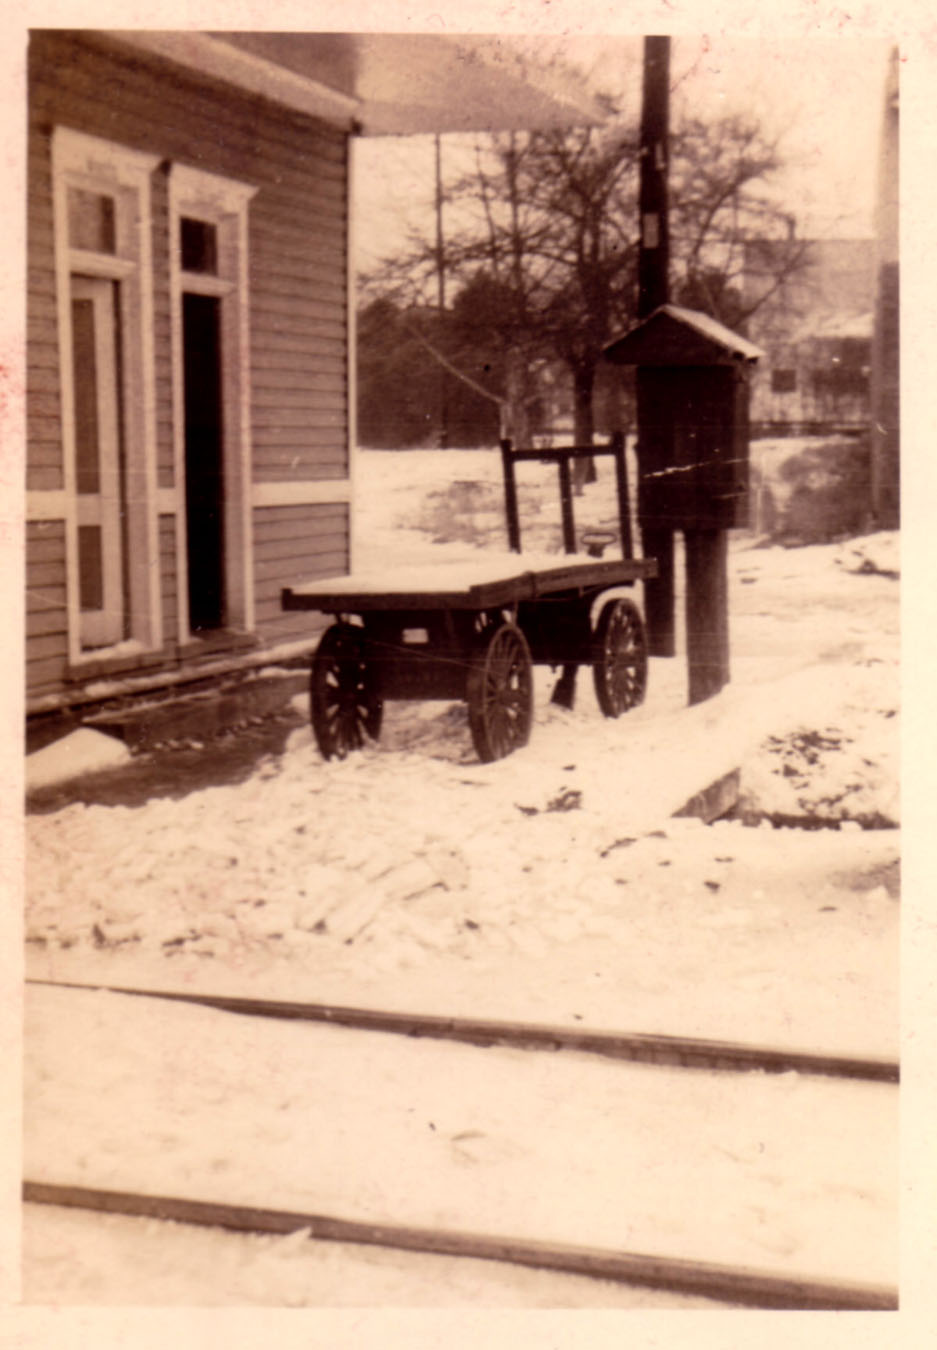 Waiting rooms and baggage cart.  Photo taken by Hudnalle McLean Sr.  Note Langford/House in background.